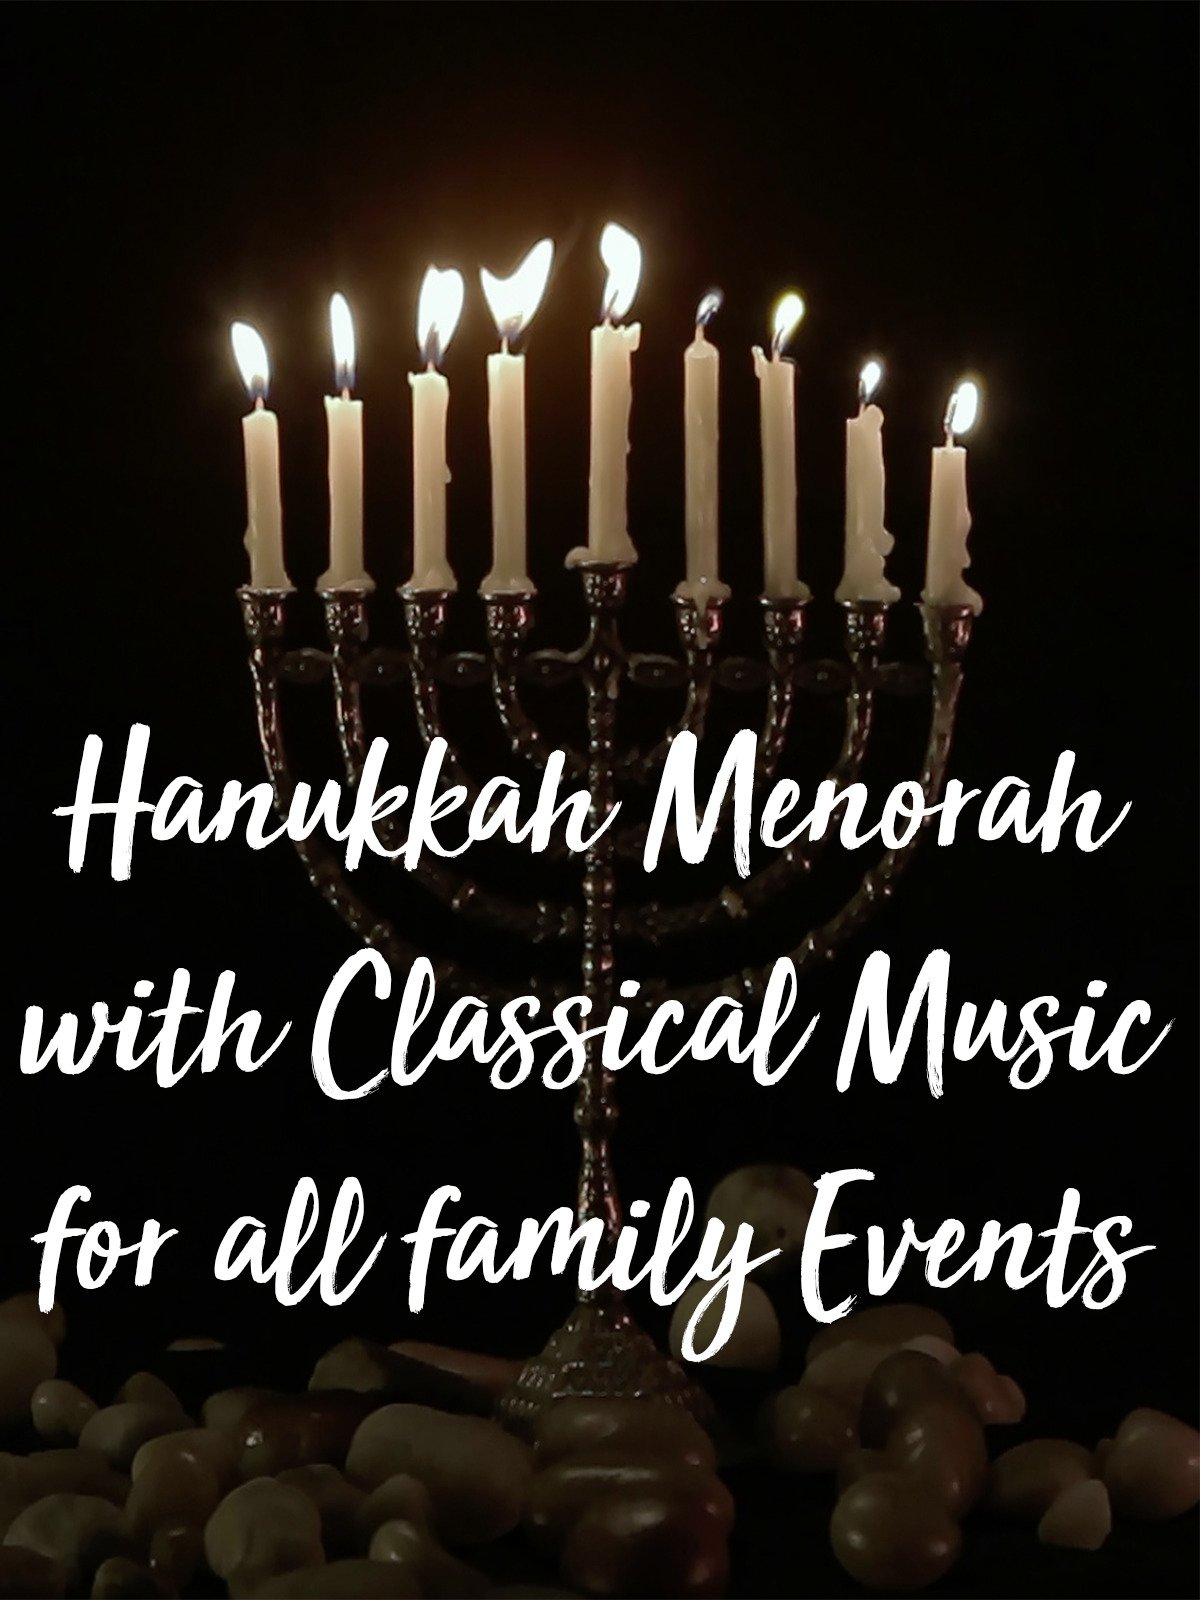 Hanukkah Menorah with Classical Music for all family Events